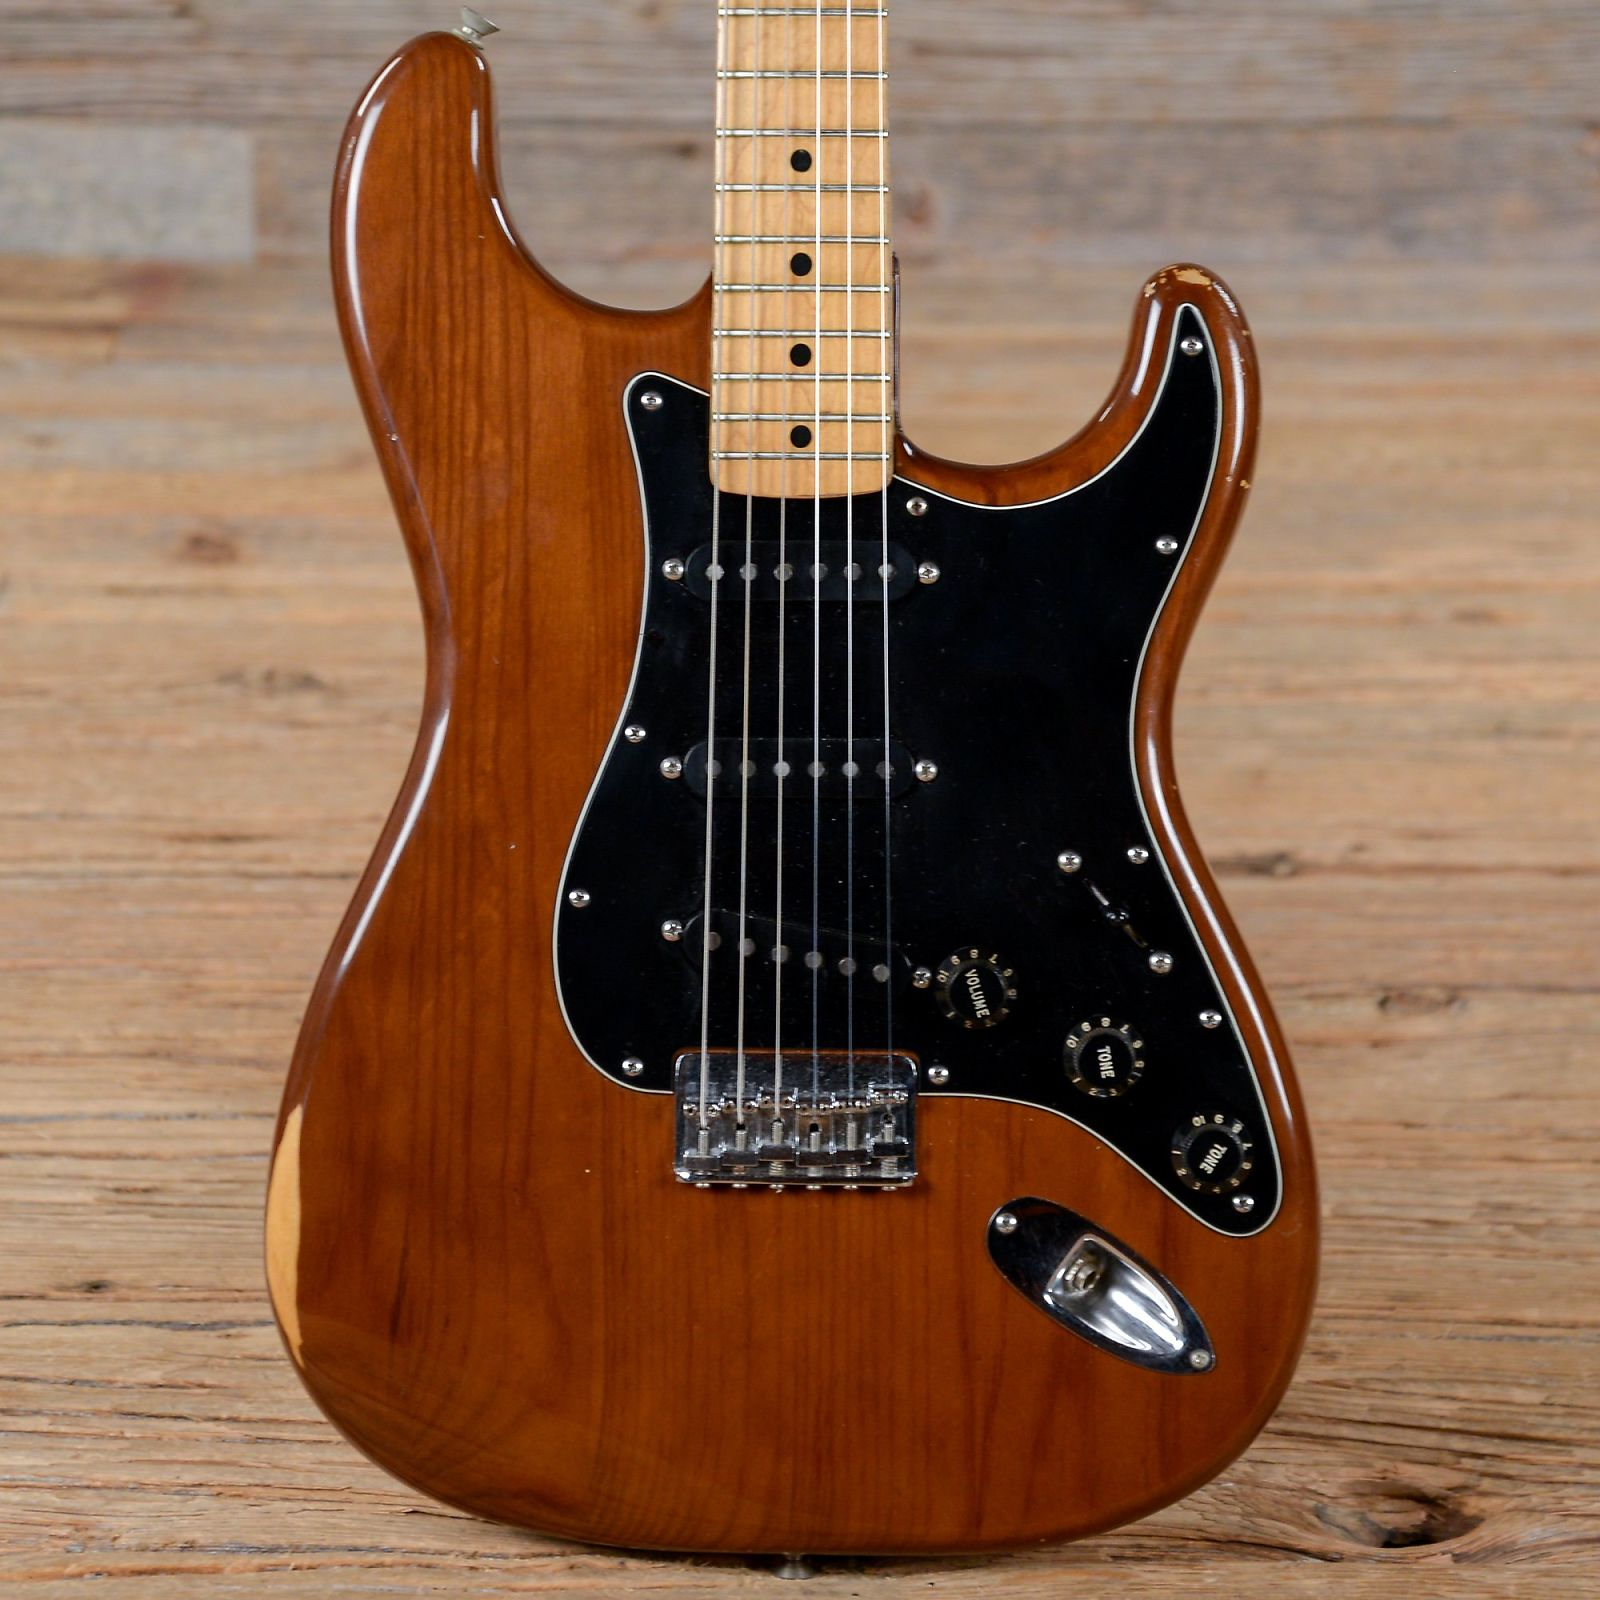 fender stratocaster hardtail mocha 1979 s134. Black Bedroom Furniture Sets. Home Design Ideas